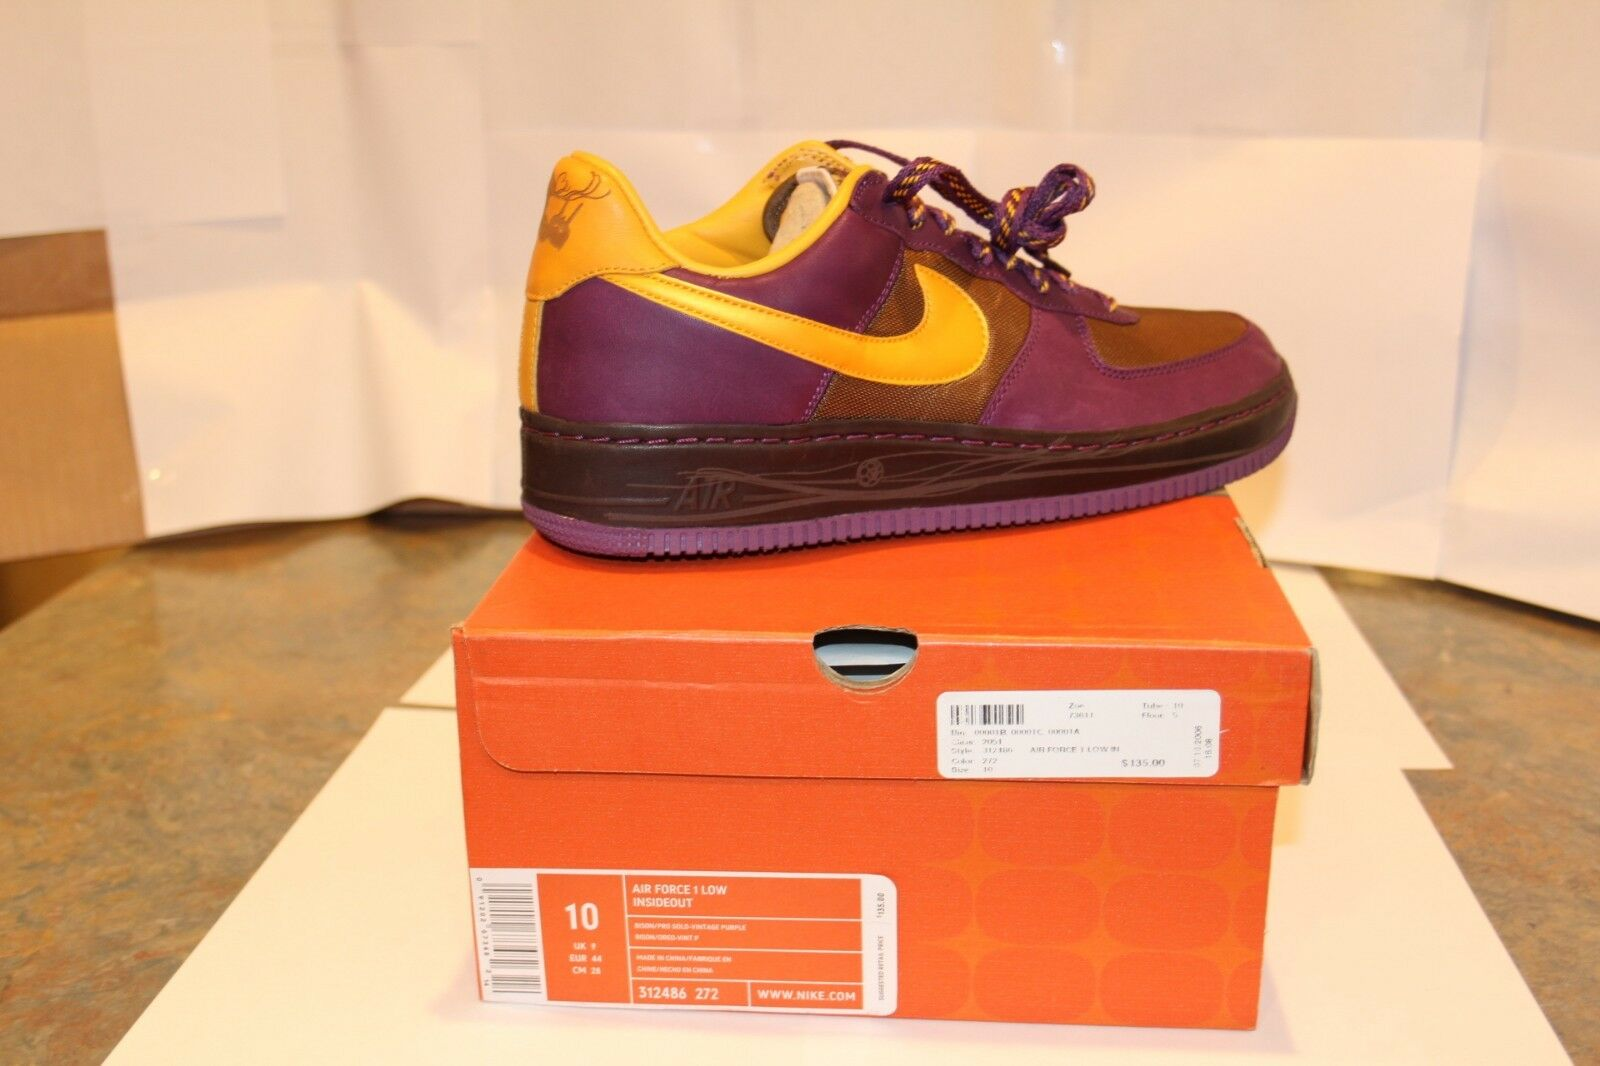 Nike Air Force 1 Low – Inside Out Bison 2006